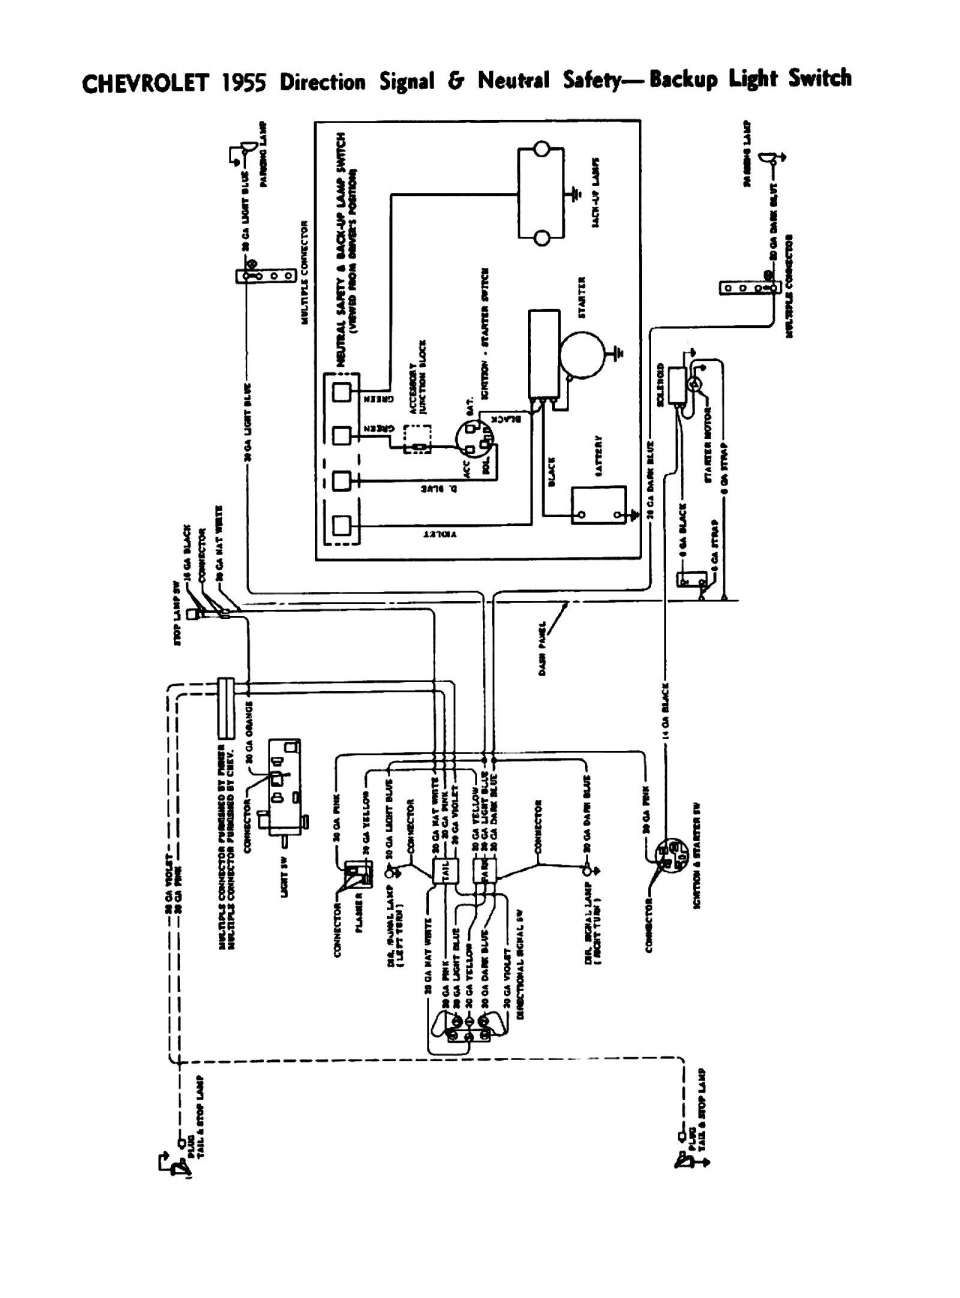 17 1955 Chevrolet Truck Wiring Diagram Electrical Wiring Diagram Chevy Trucks Safety Switch